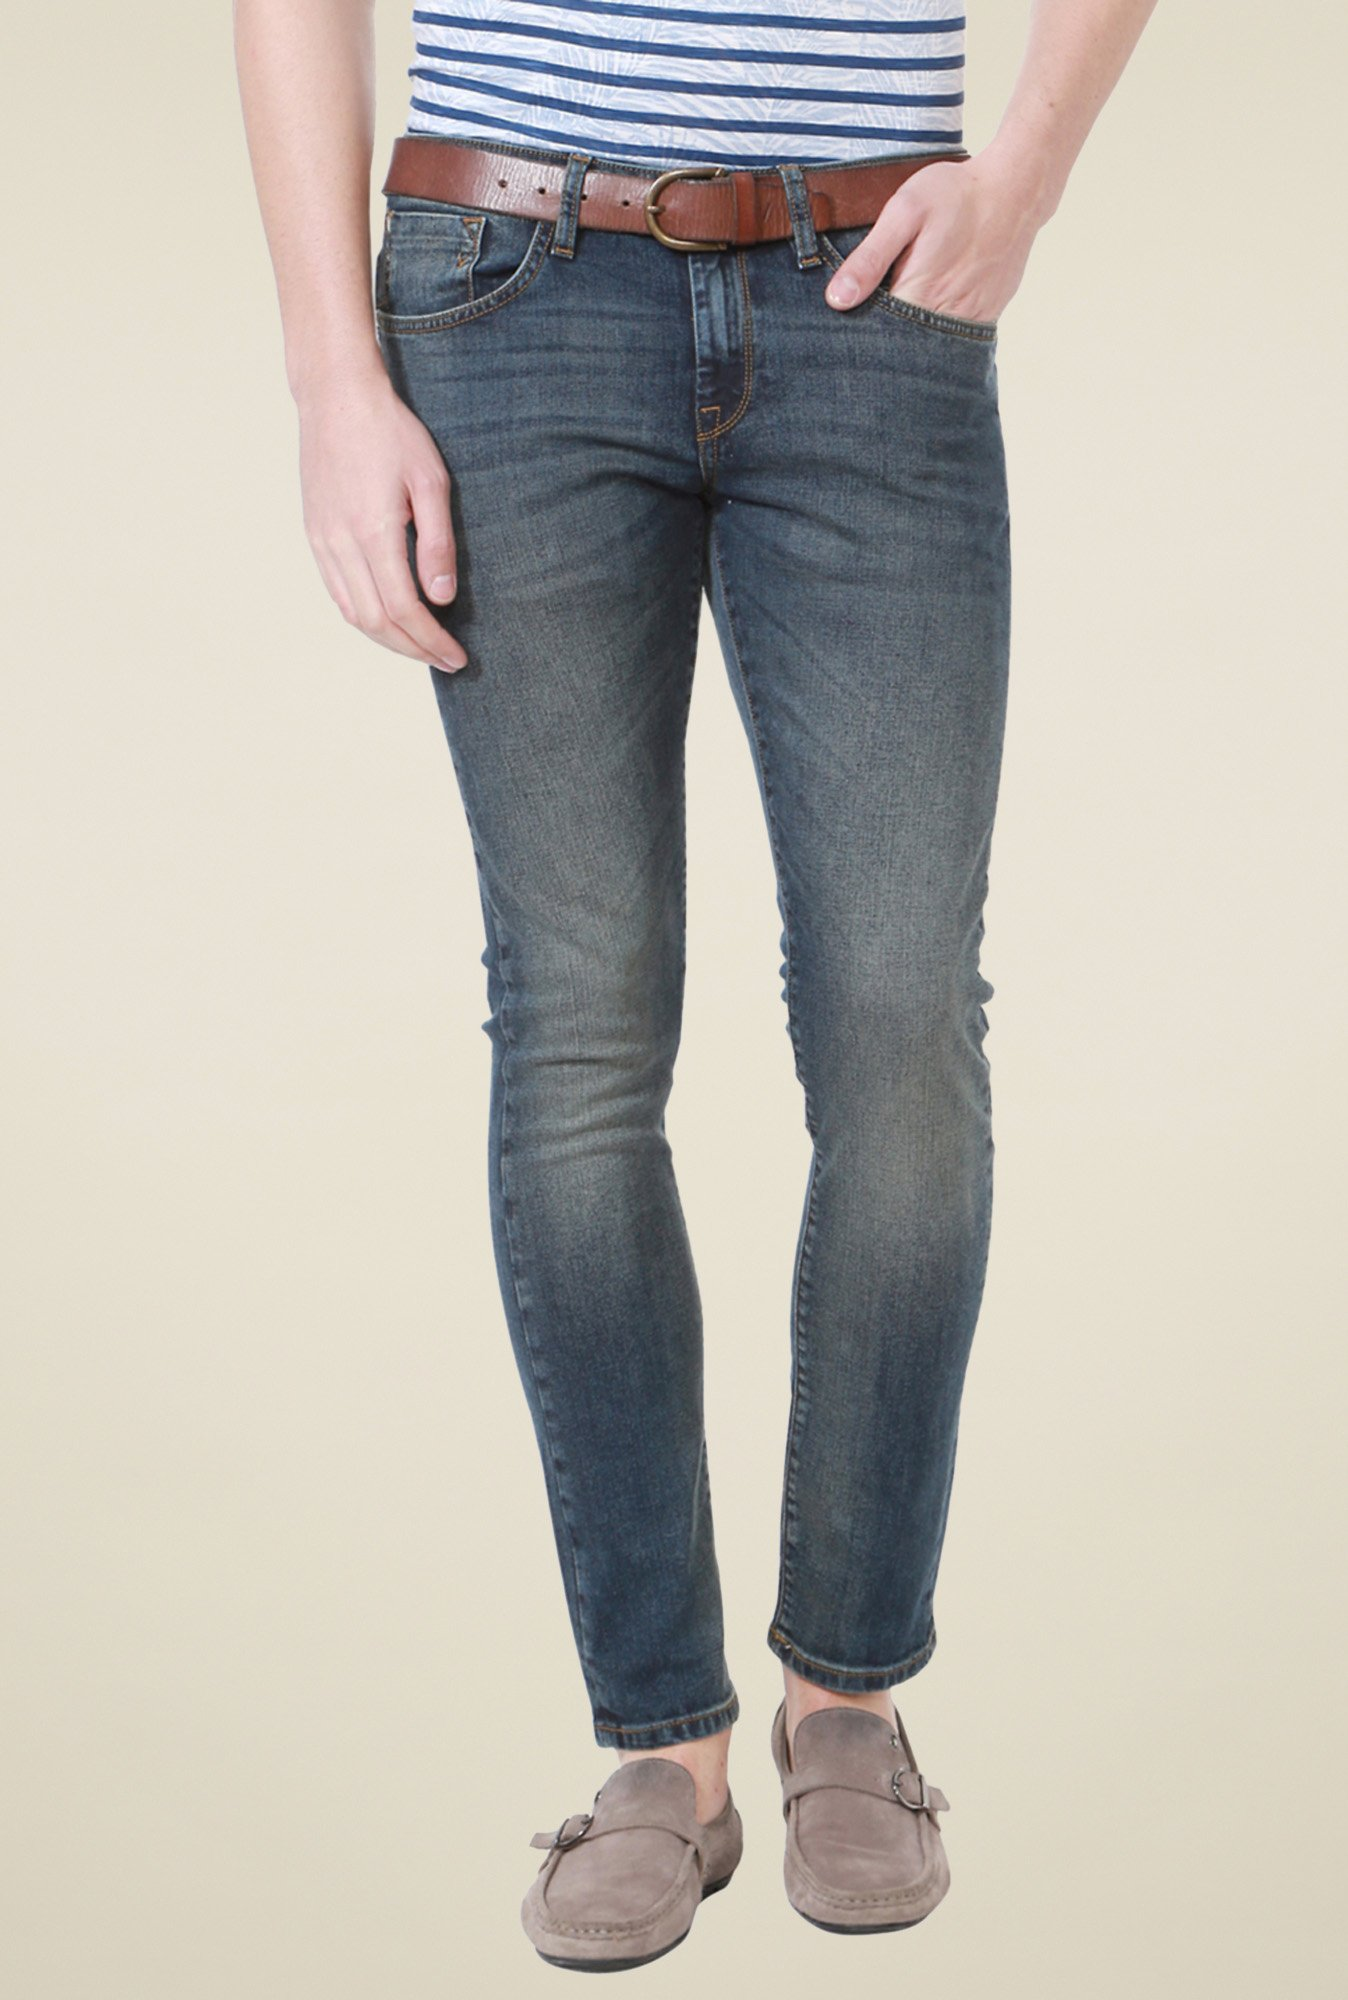 Allen Solly Blue Mid Rise Slim Fit Jeans